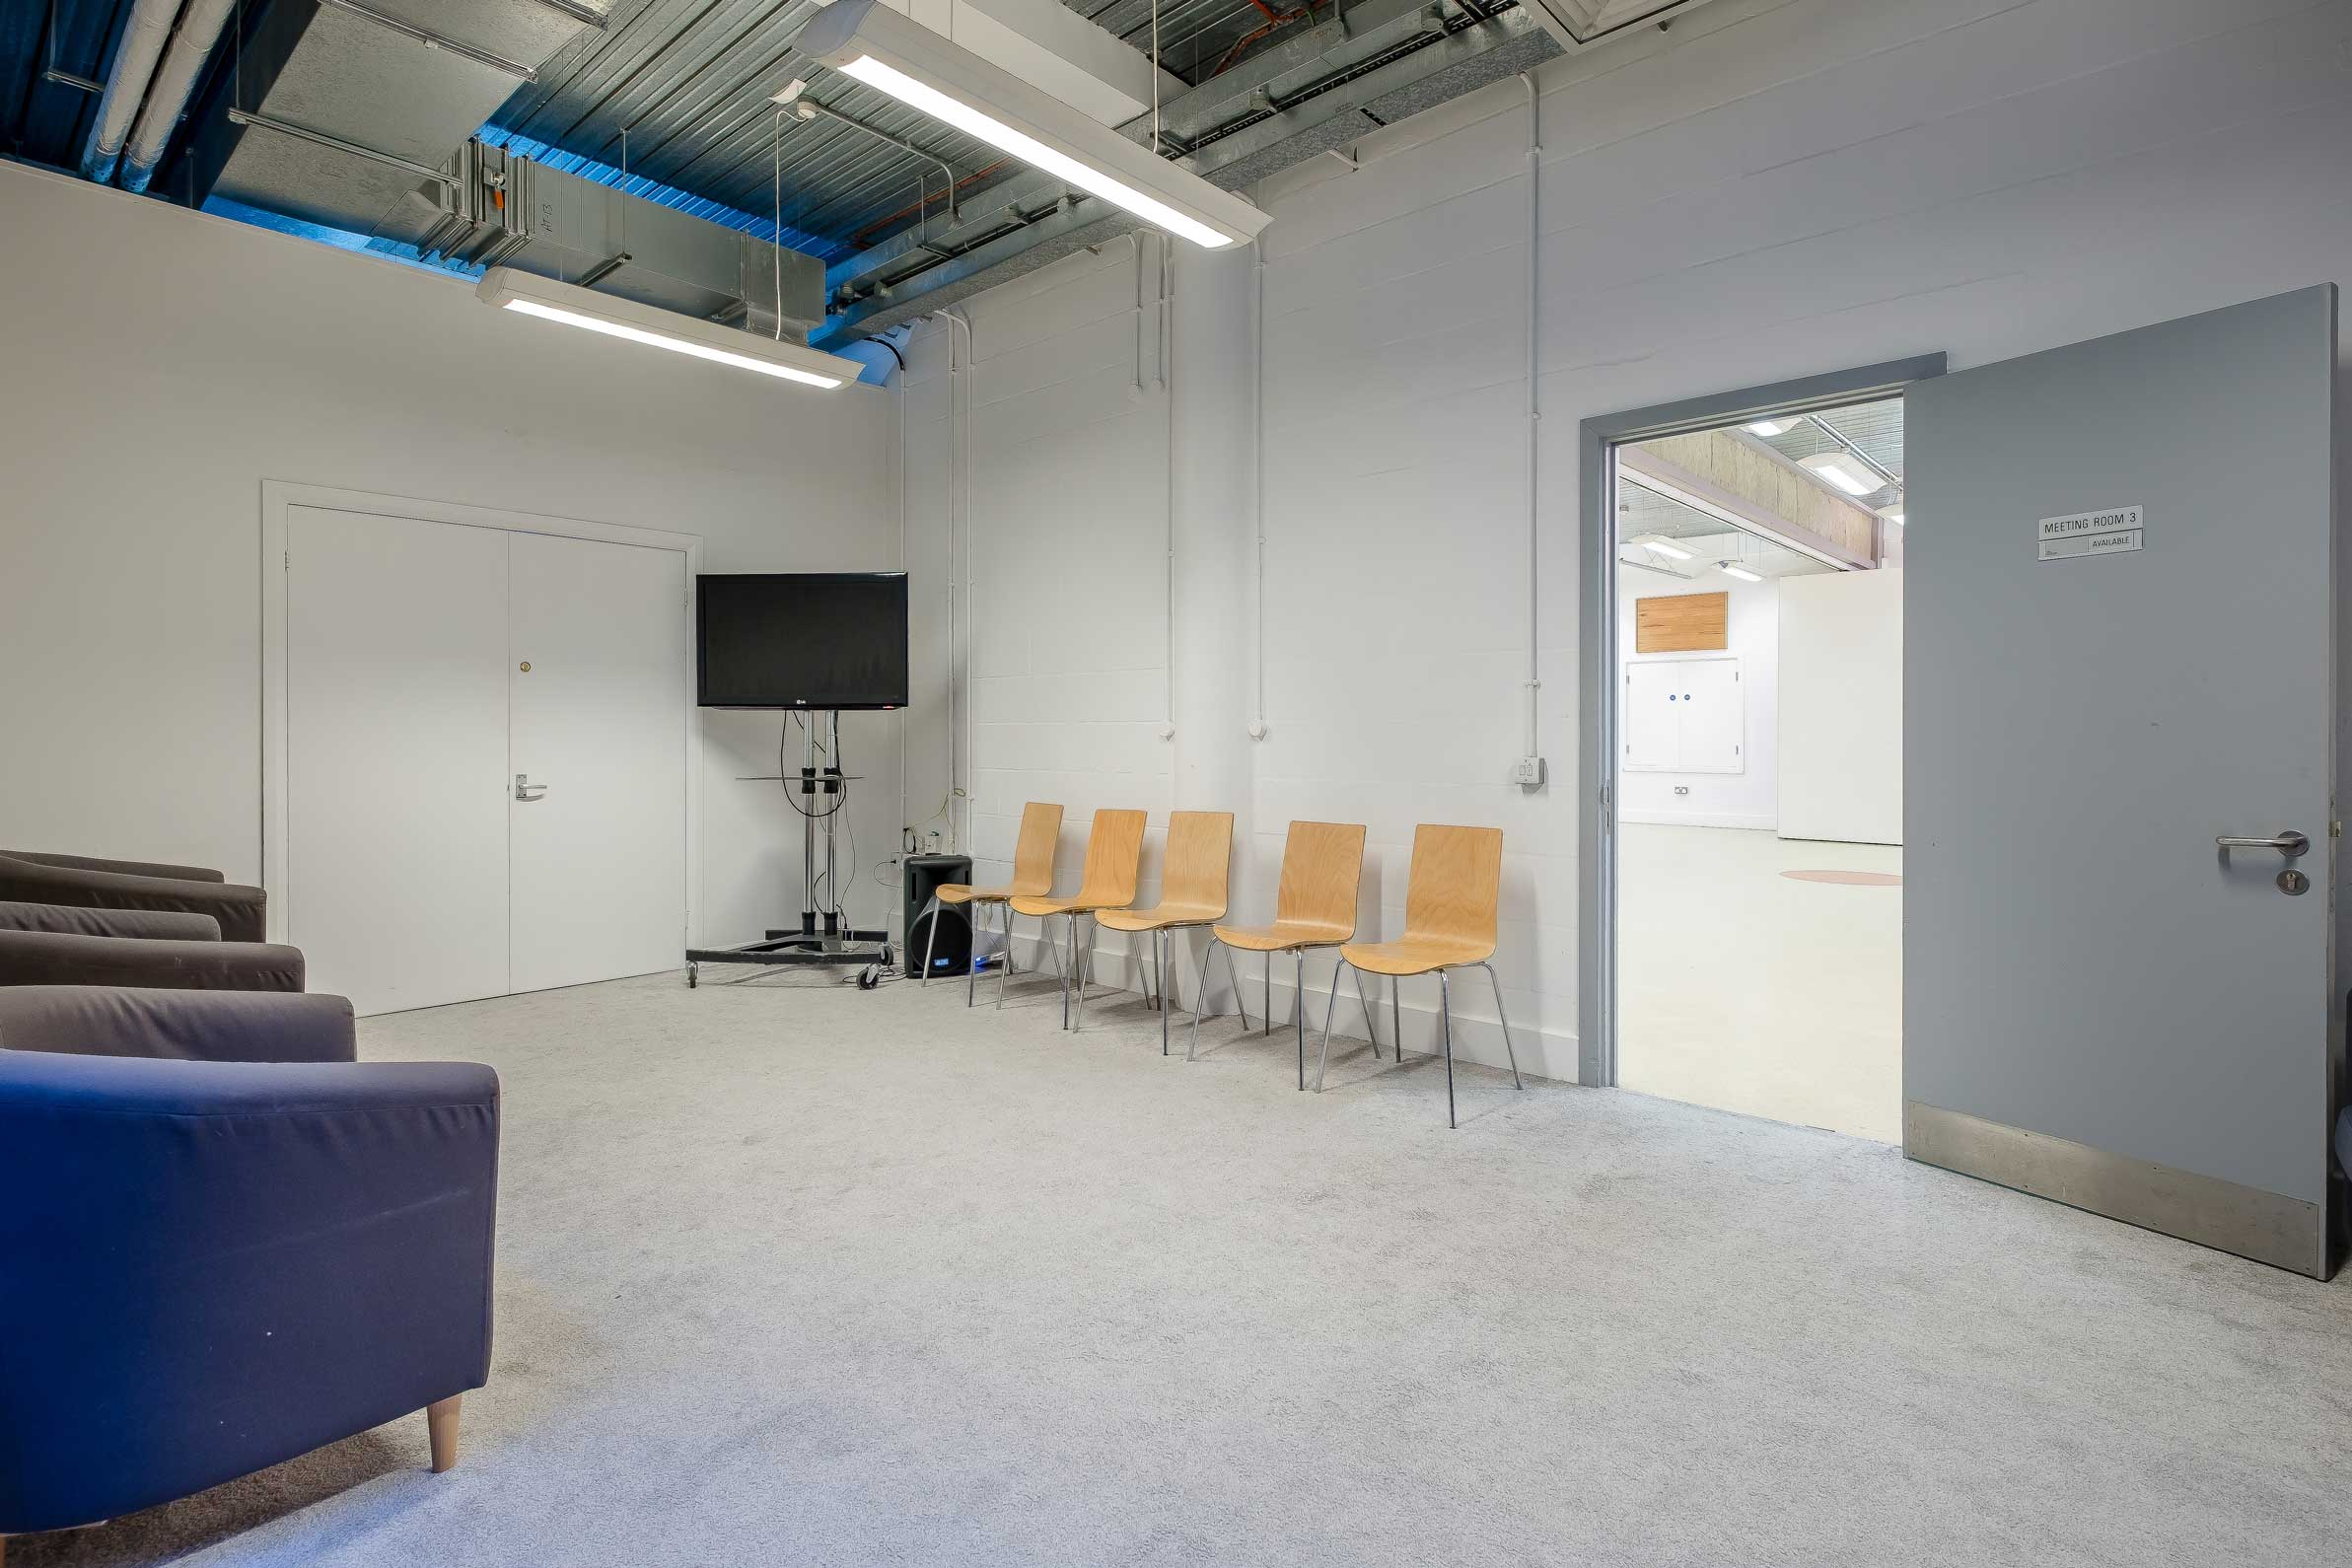 Meeting Room 3 with tv and chairs